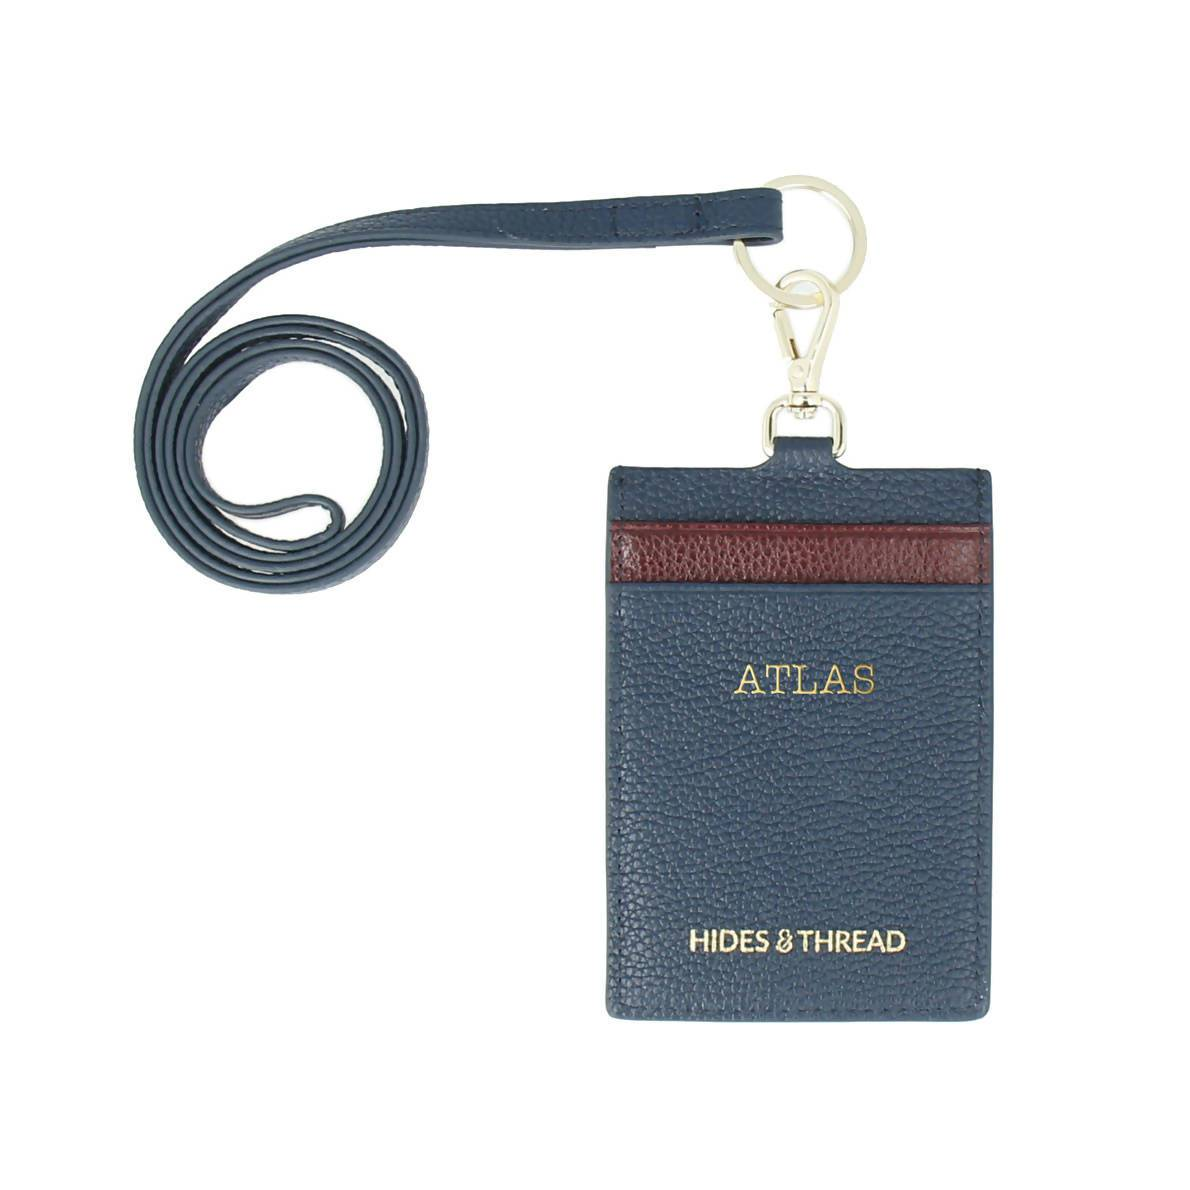 Atlas Leather Lanyard - Cardholders - Hides and Thread - Naiise